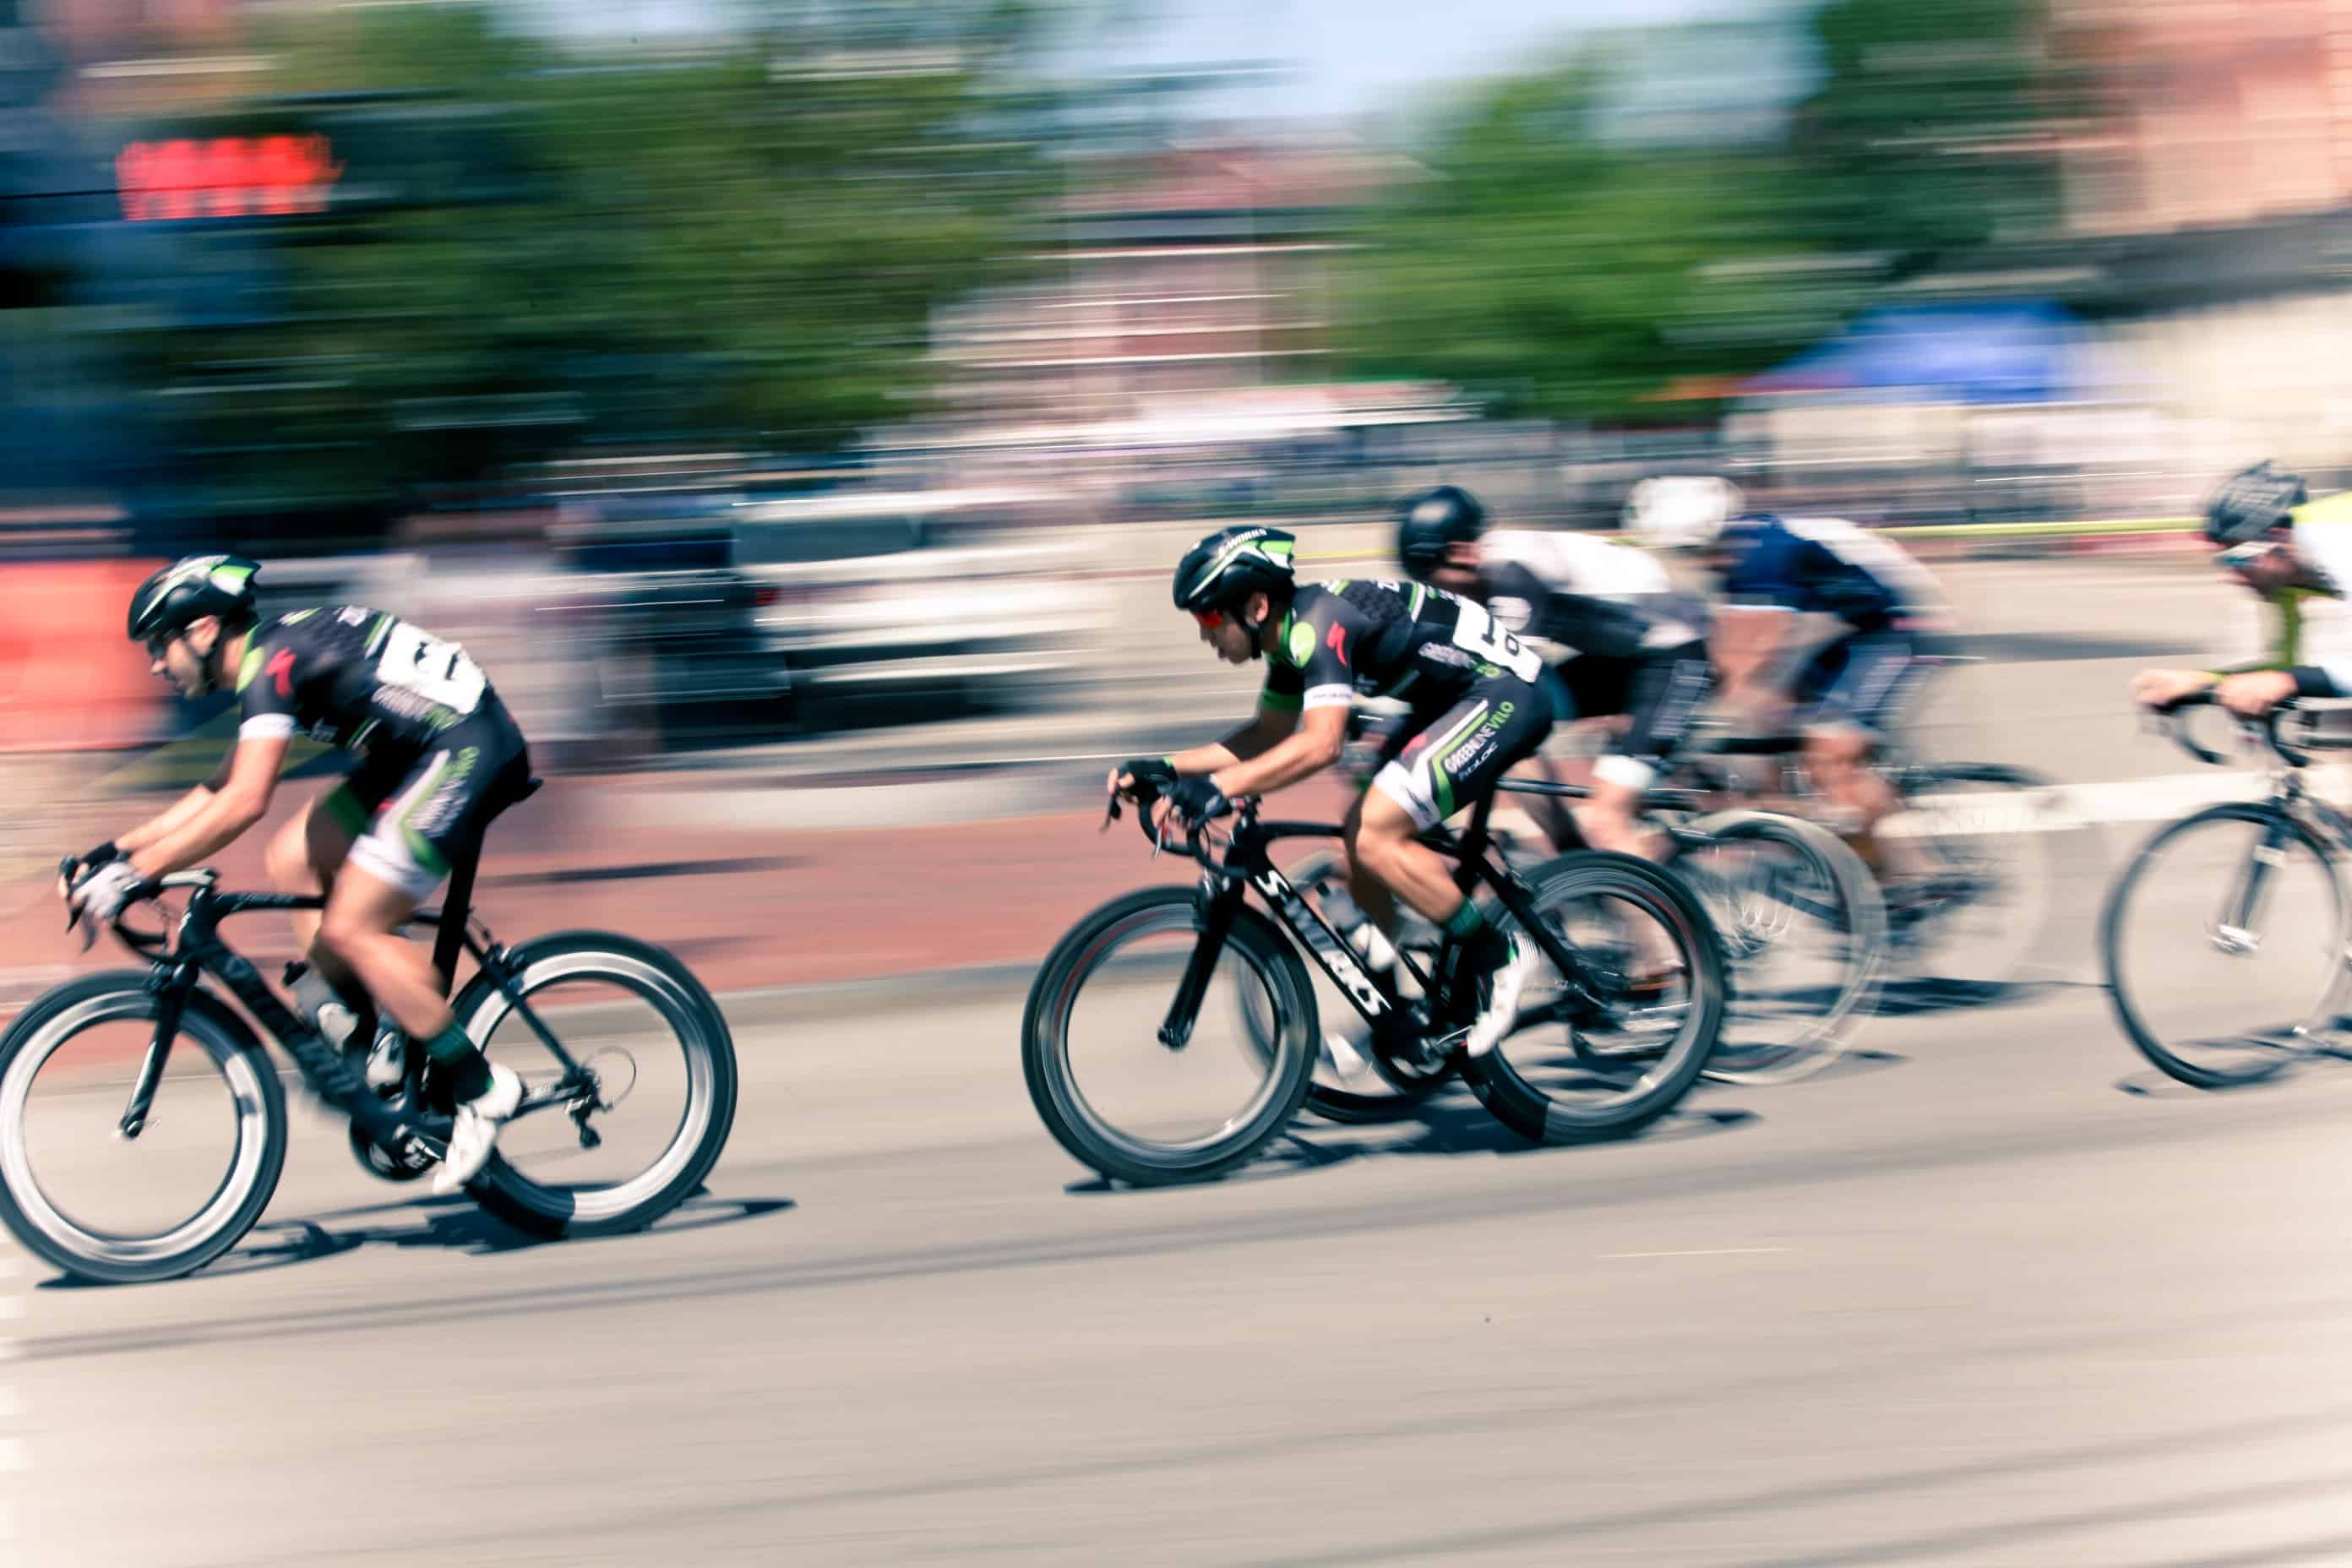 People in a bicycle race